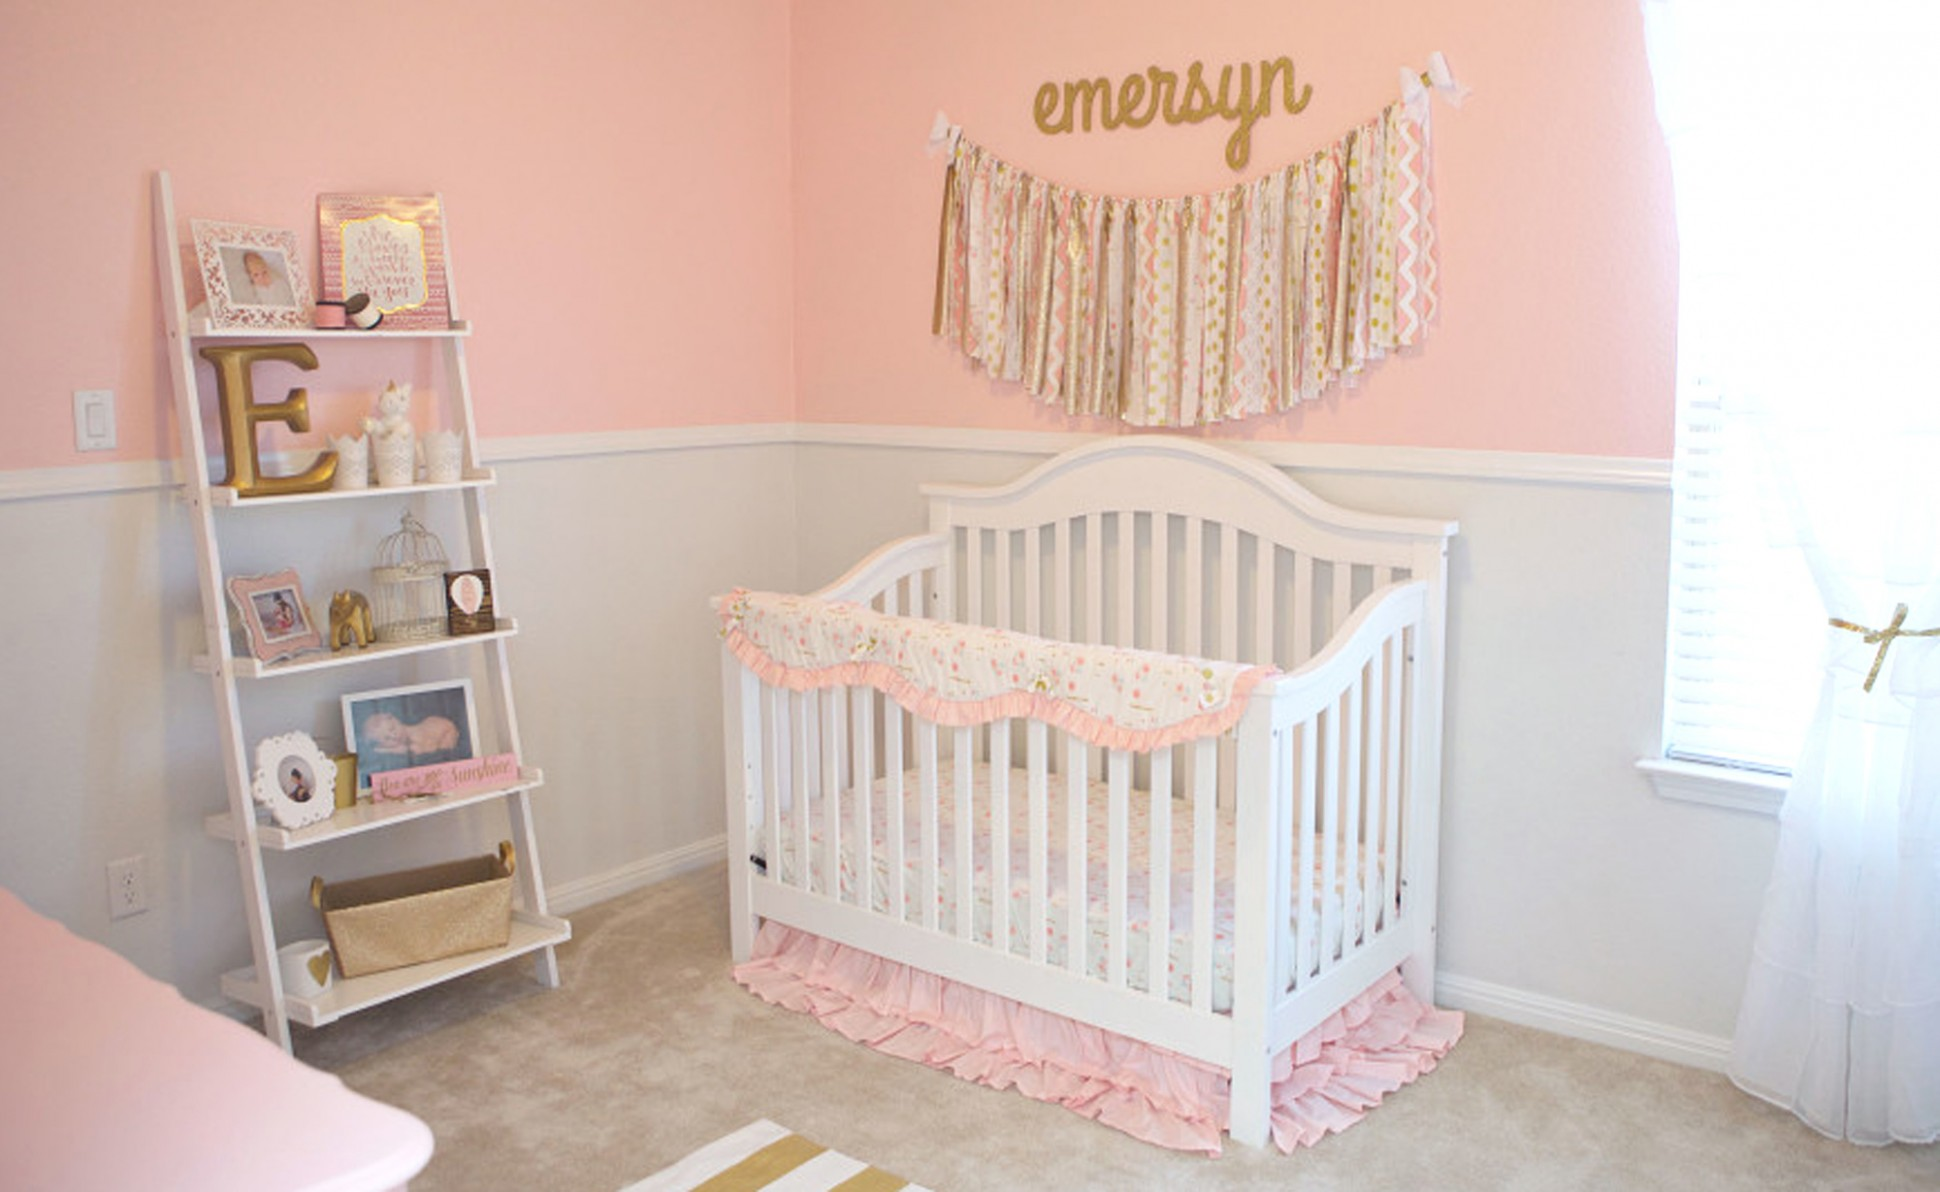 This is the Easiest DIY Fabric Garland Ever! - Project Nursery - Baby Room Garland